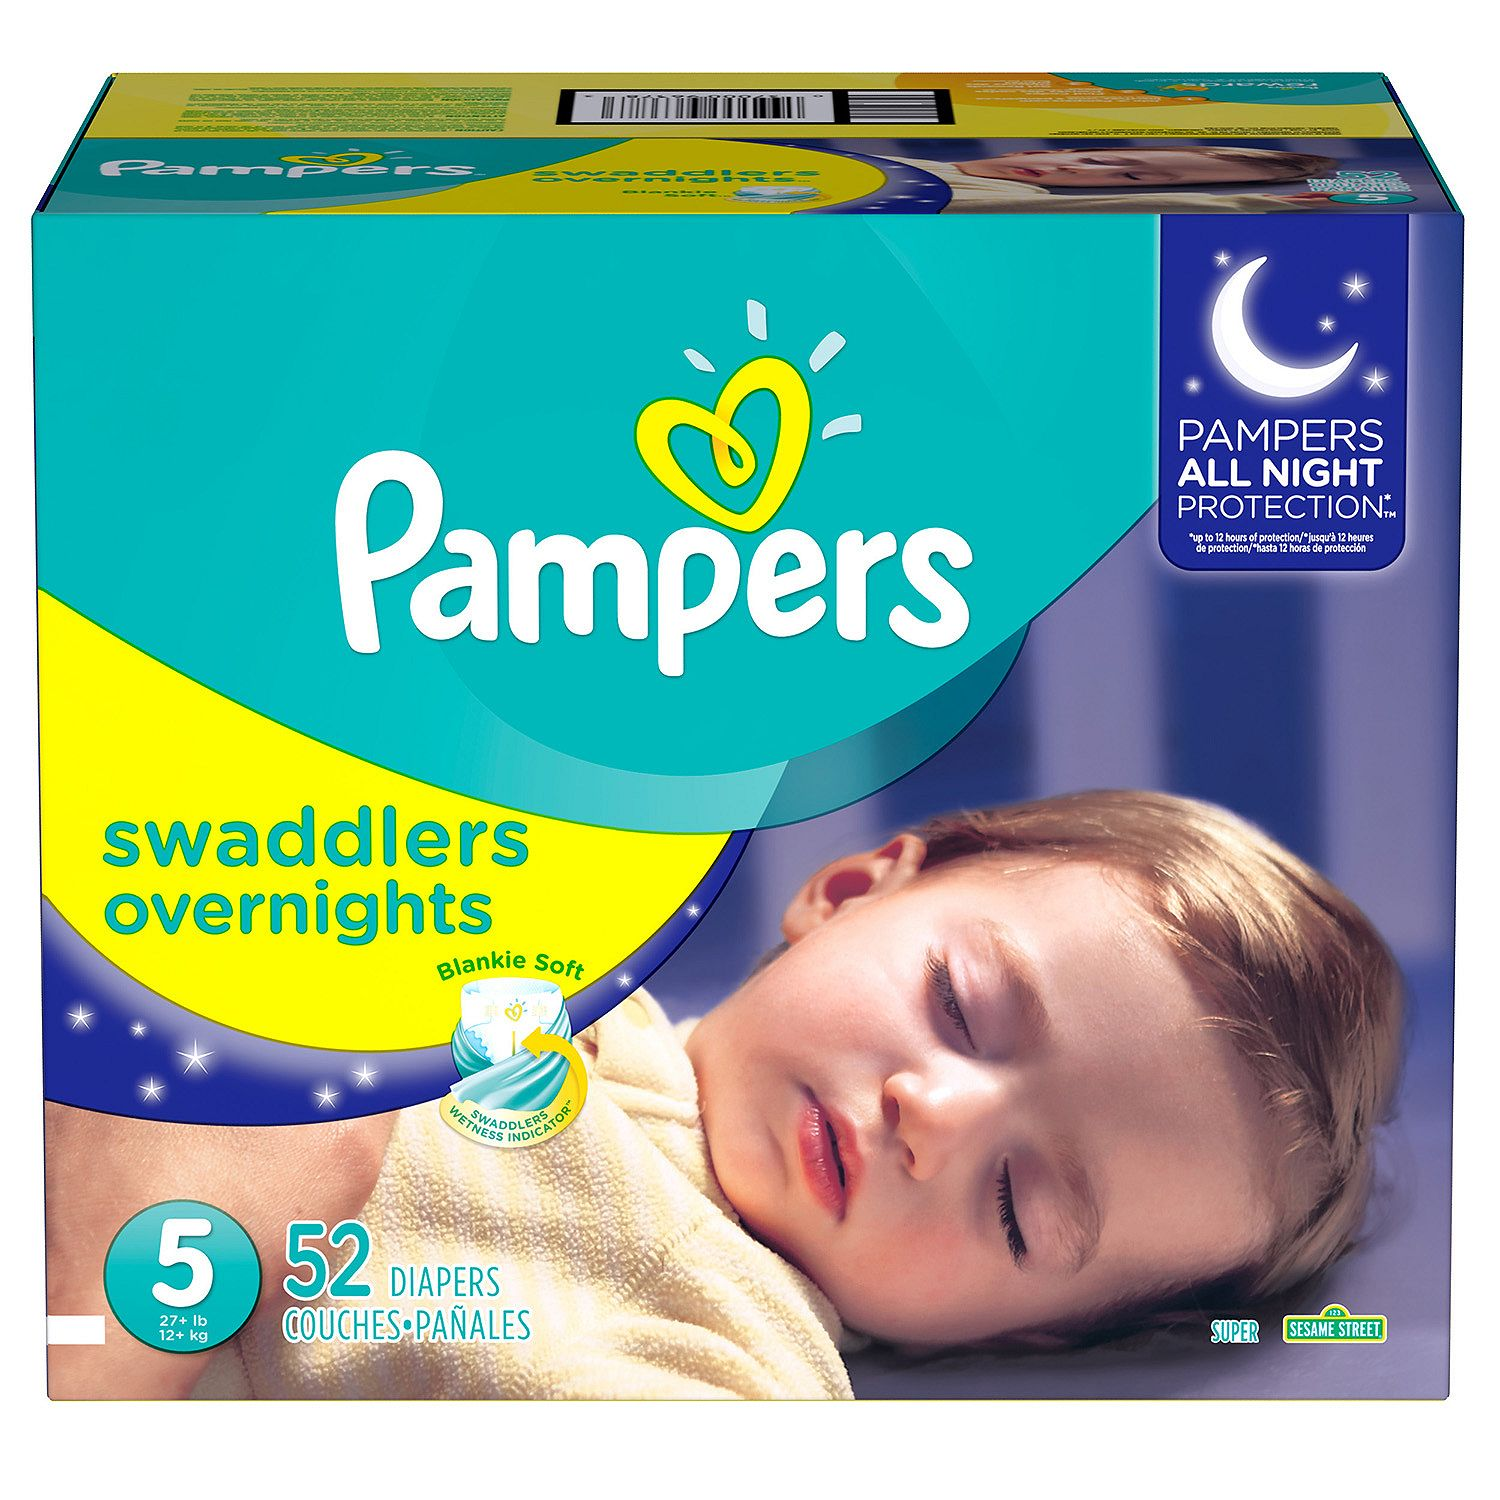 Pampers Swaddlers Overnights Diapers - Diaper Size 5 - 52 Ct. ( Weight 27+) - (Comfortable & Soft Diaper at a Wholeprice)